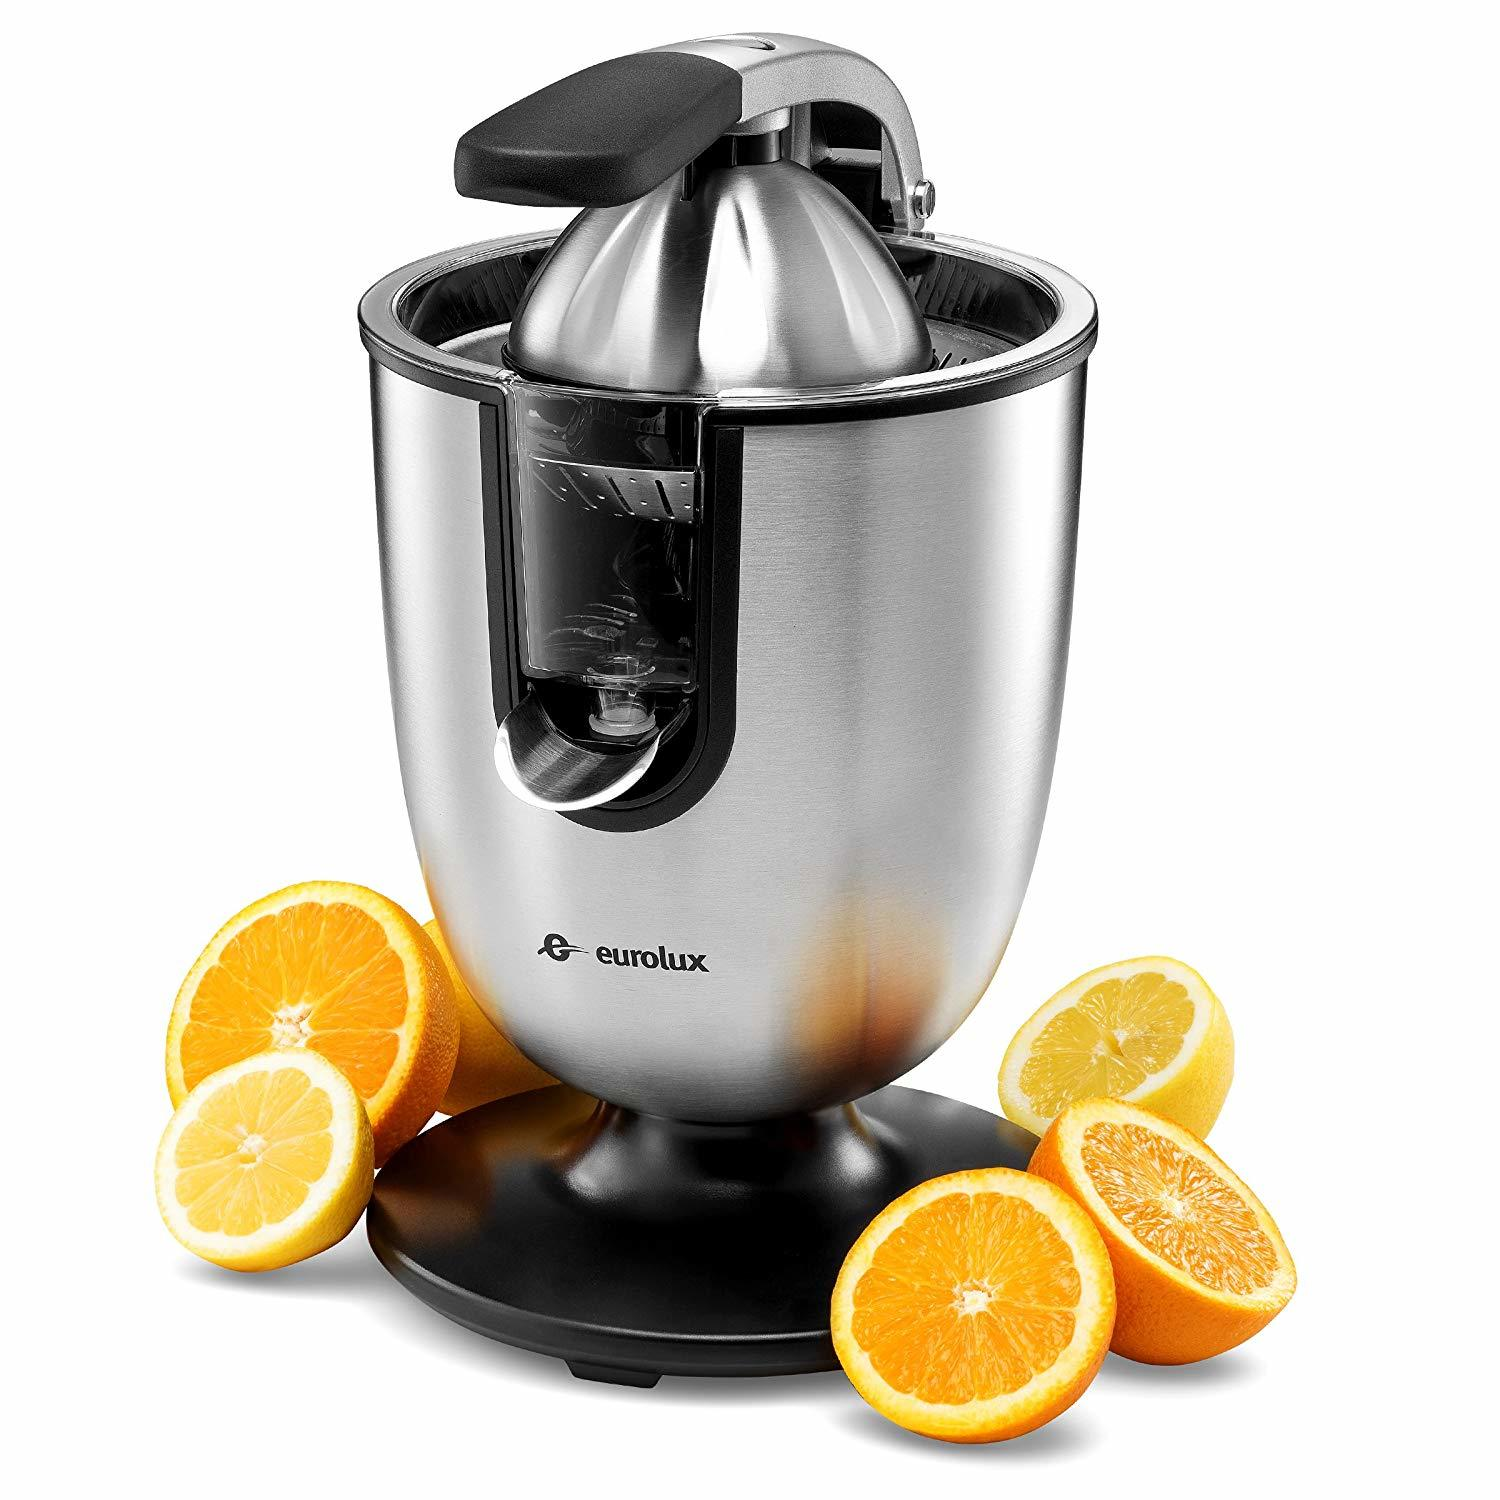 Juicer Review ELCJ-1700